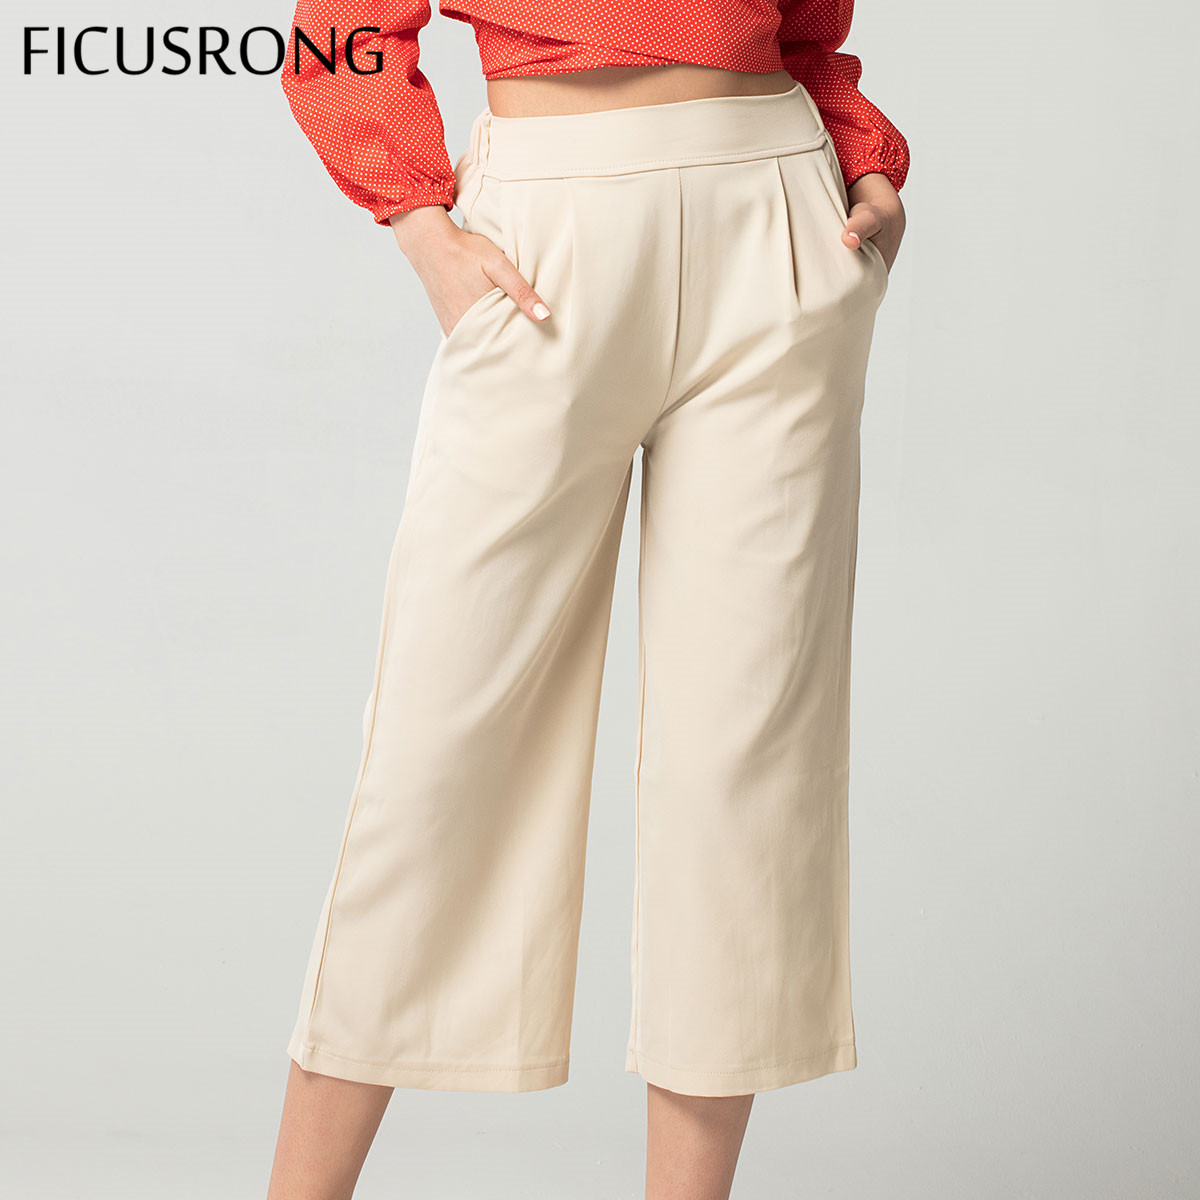 FICUSRONG Fashionable Female Summer Chiffon   Wide     Leg     Pants   Women's High Waist Large   Pant   M-6XL Plus Size Ankle-Length Capris